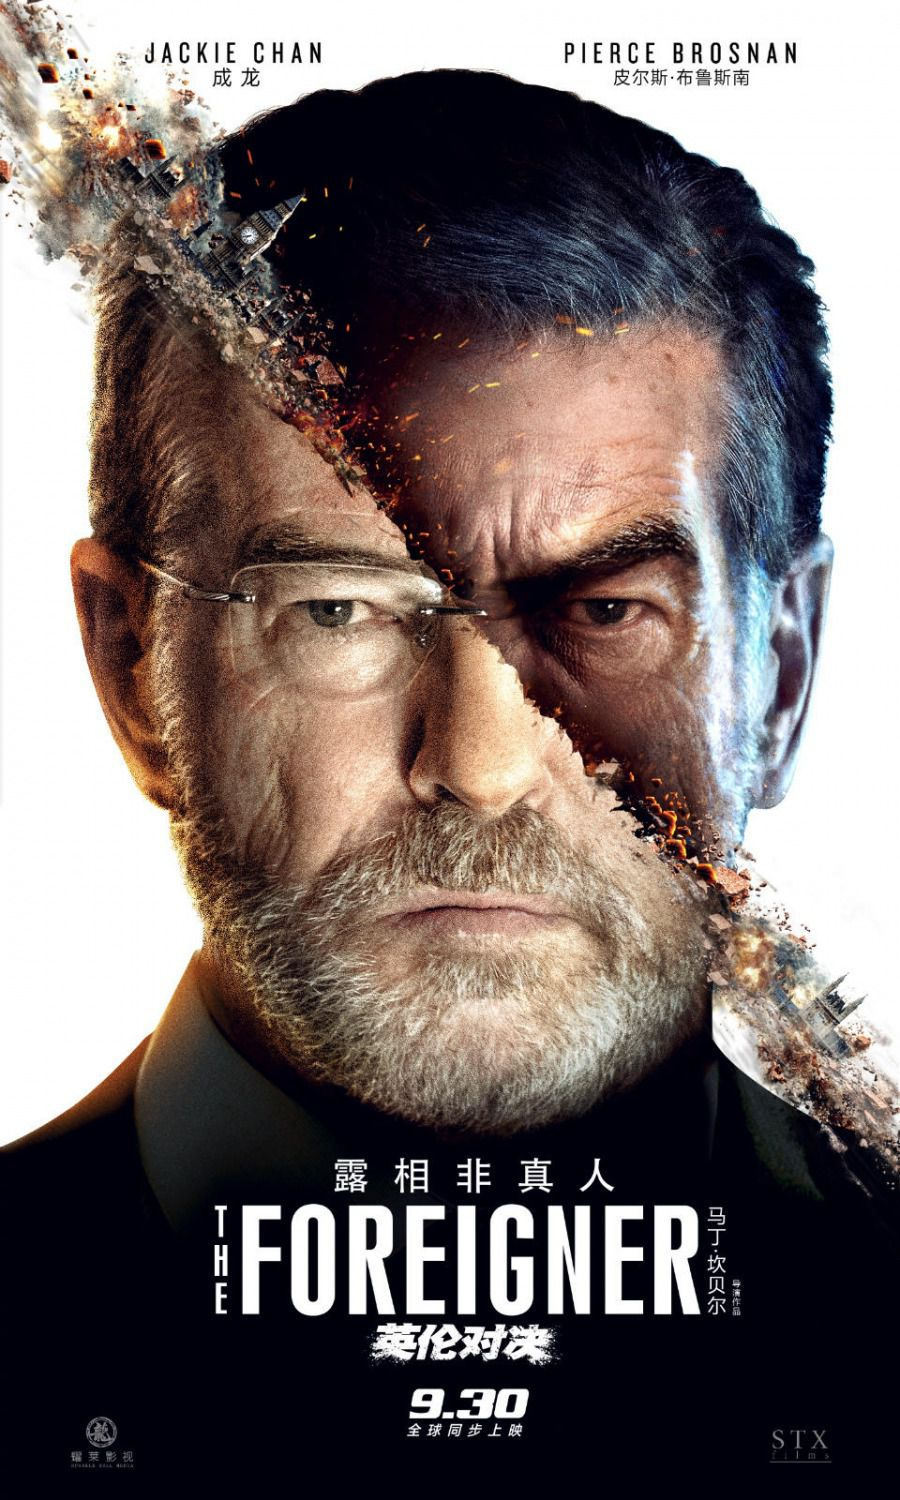 The Foreigner - lo Straniero - El Implacable - implacabile - Pierce Brosnan